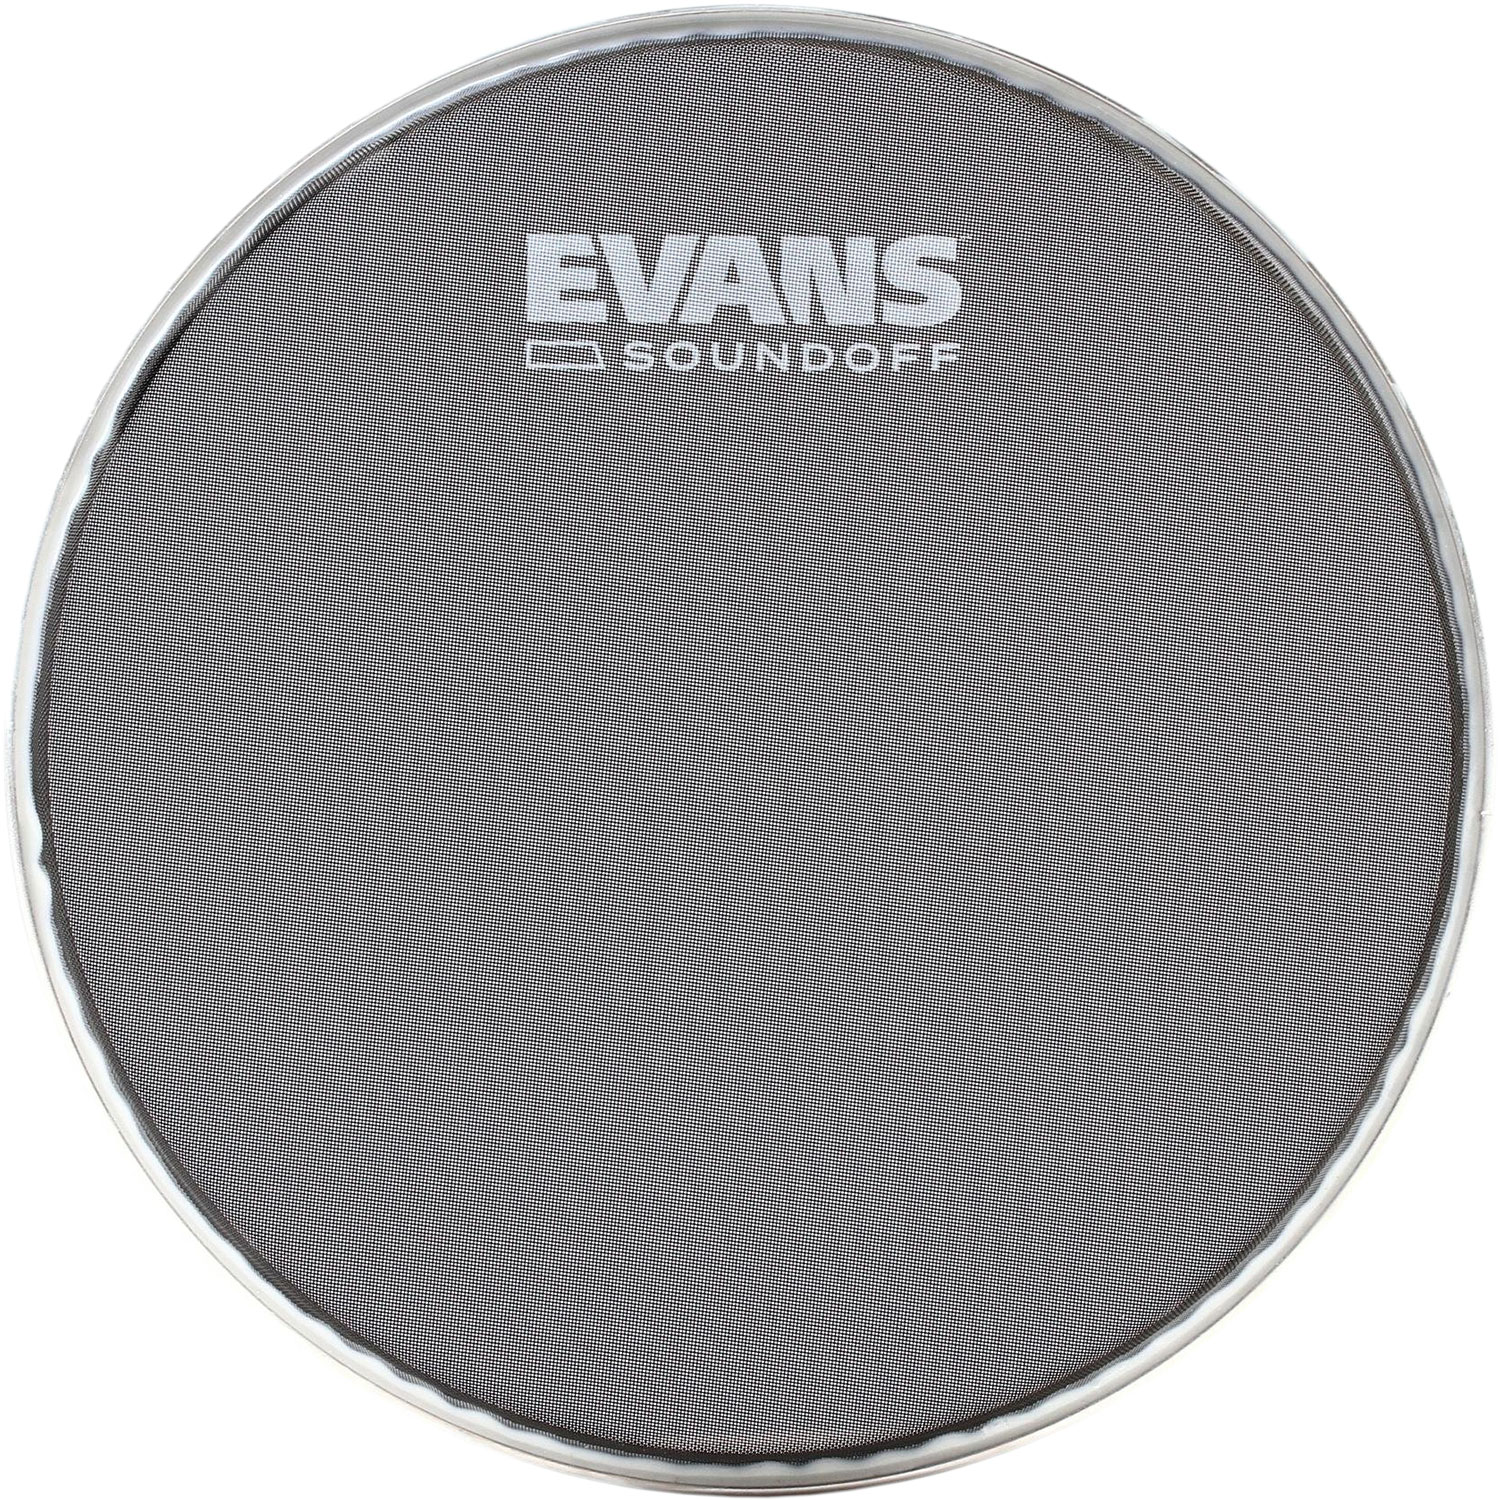 "Evans 13"" SoundOff Mesh Drum Head"